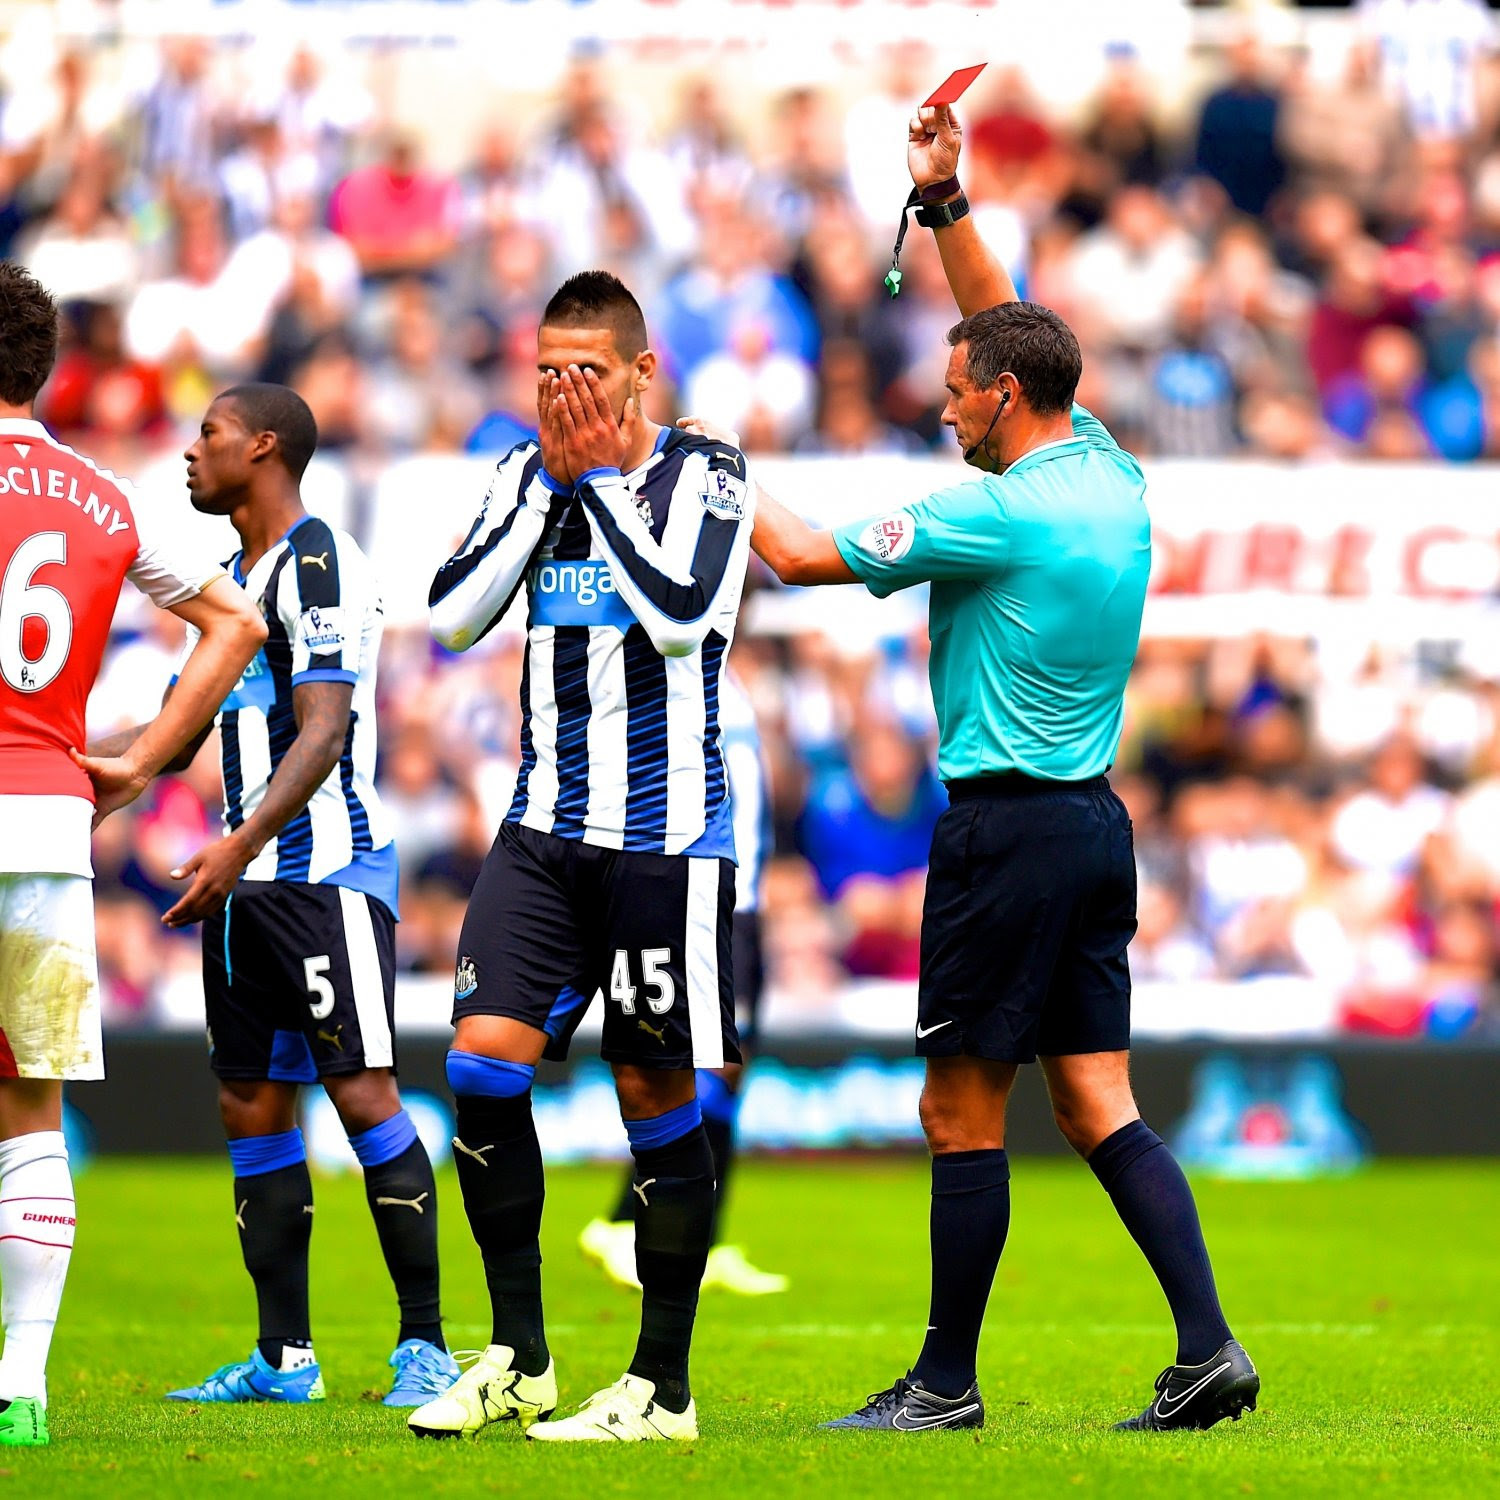 Newcastle United vs. Arsenal: Live Score, Highlights from ...